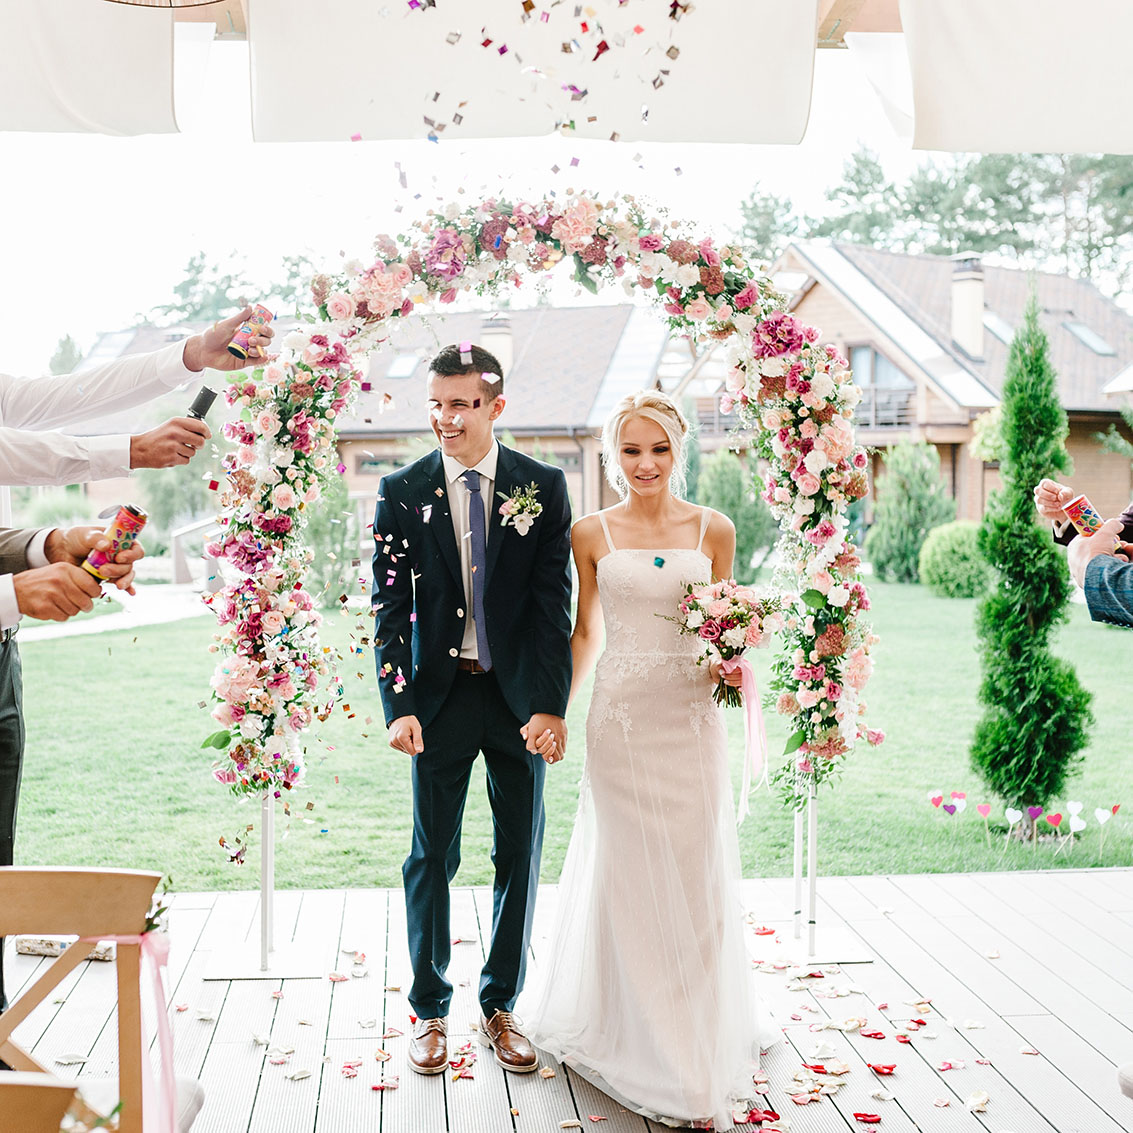 The bride and groom go through the arch, theirs sprinkled with leaves of roses and colored confetti. Wedding ceremony decorated with flowers and greenery of the outdoor in backyard banquet area.